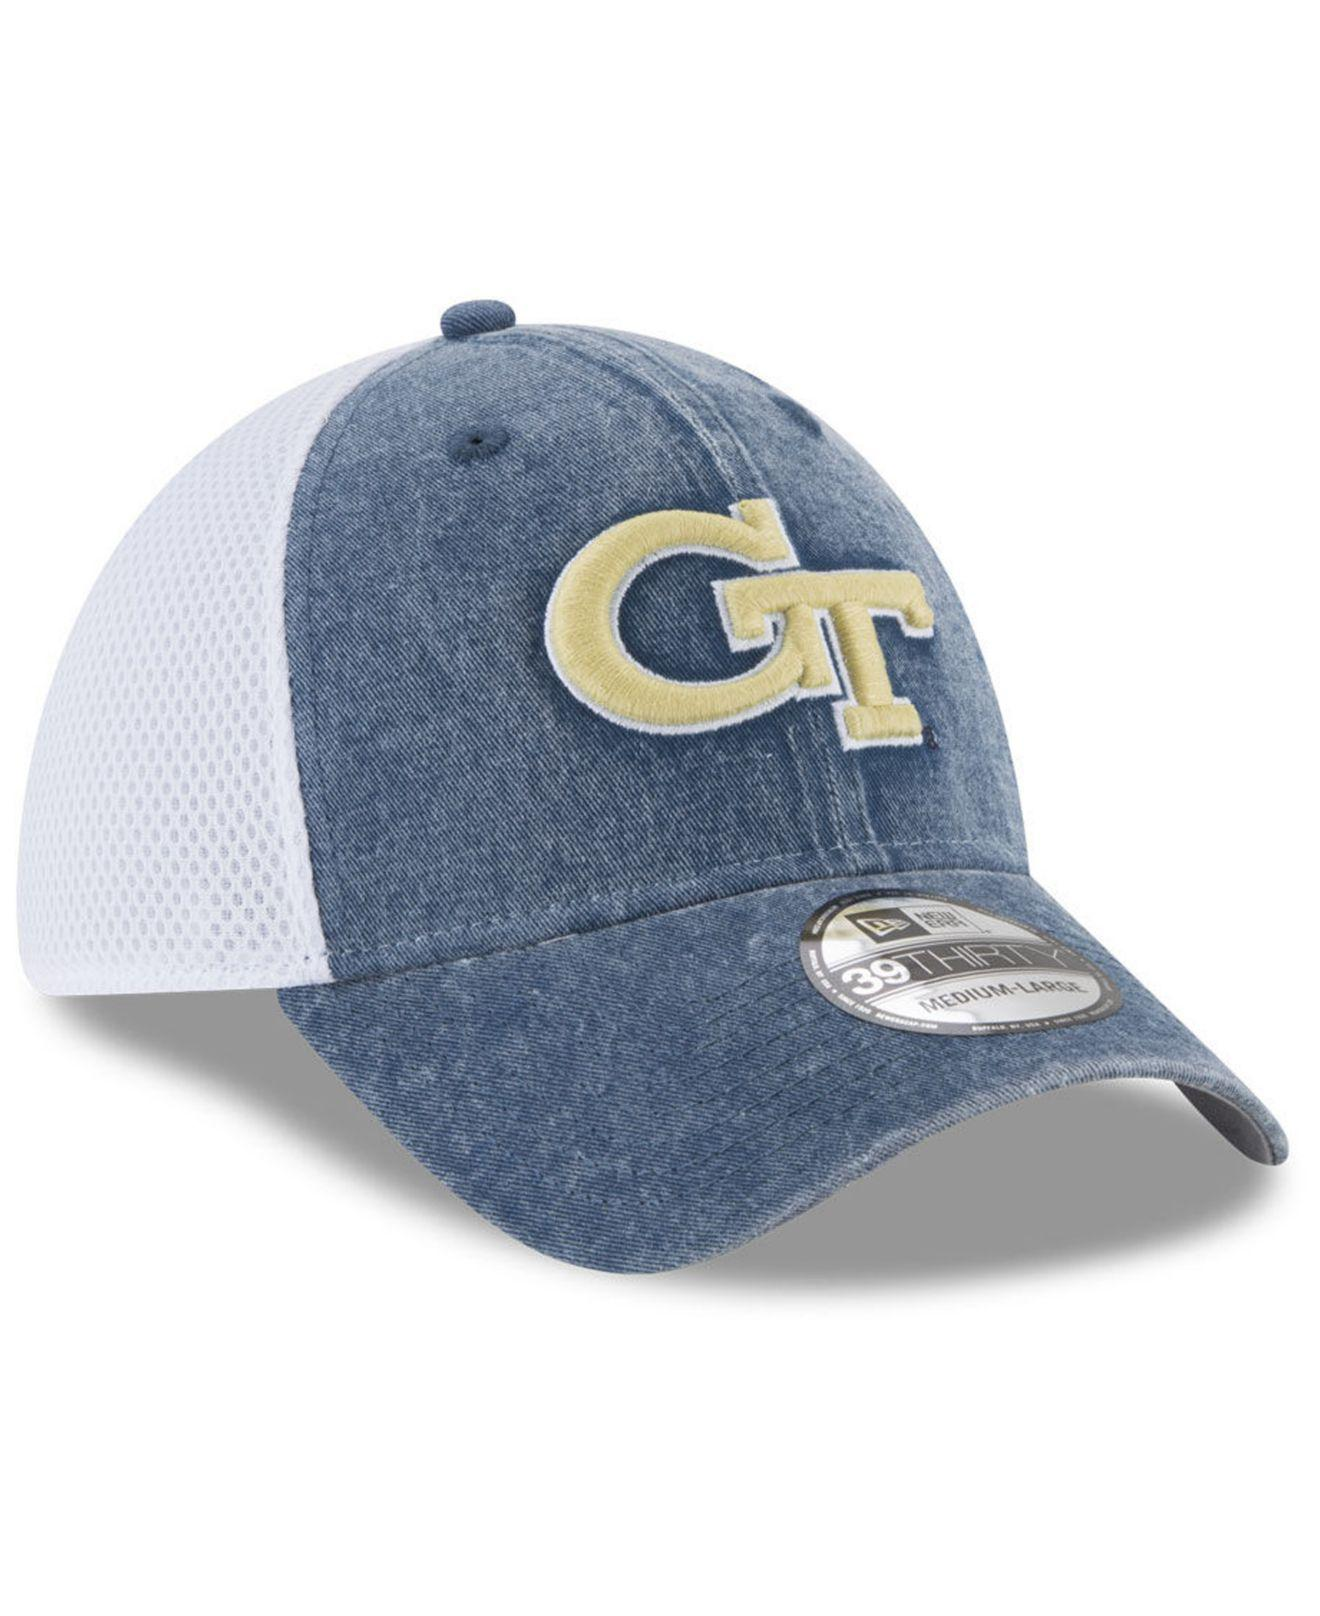 uk availability 4eaf2 8f54e ... where to buy georgia tech washed neo 39thirty cap for men lyst. view  fullscreen 5d762